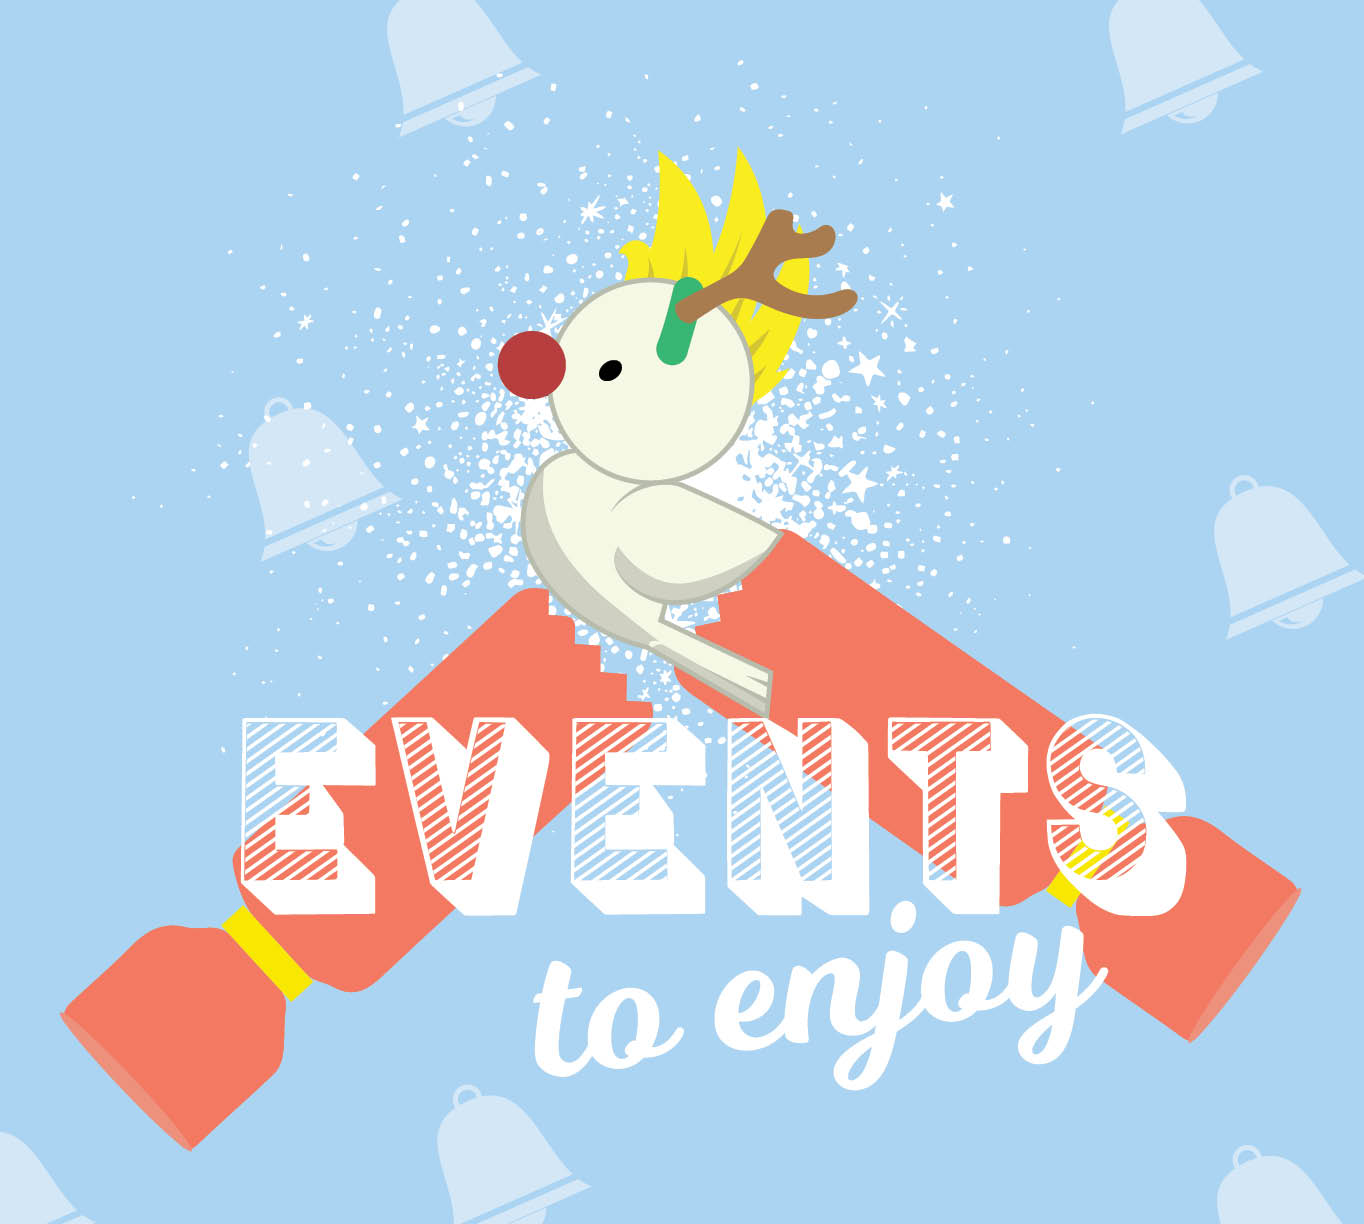 CH4806_Xmas 2019_Web Tiles_Events to enjoy_628x612px